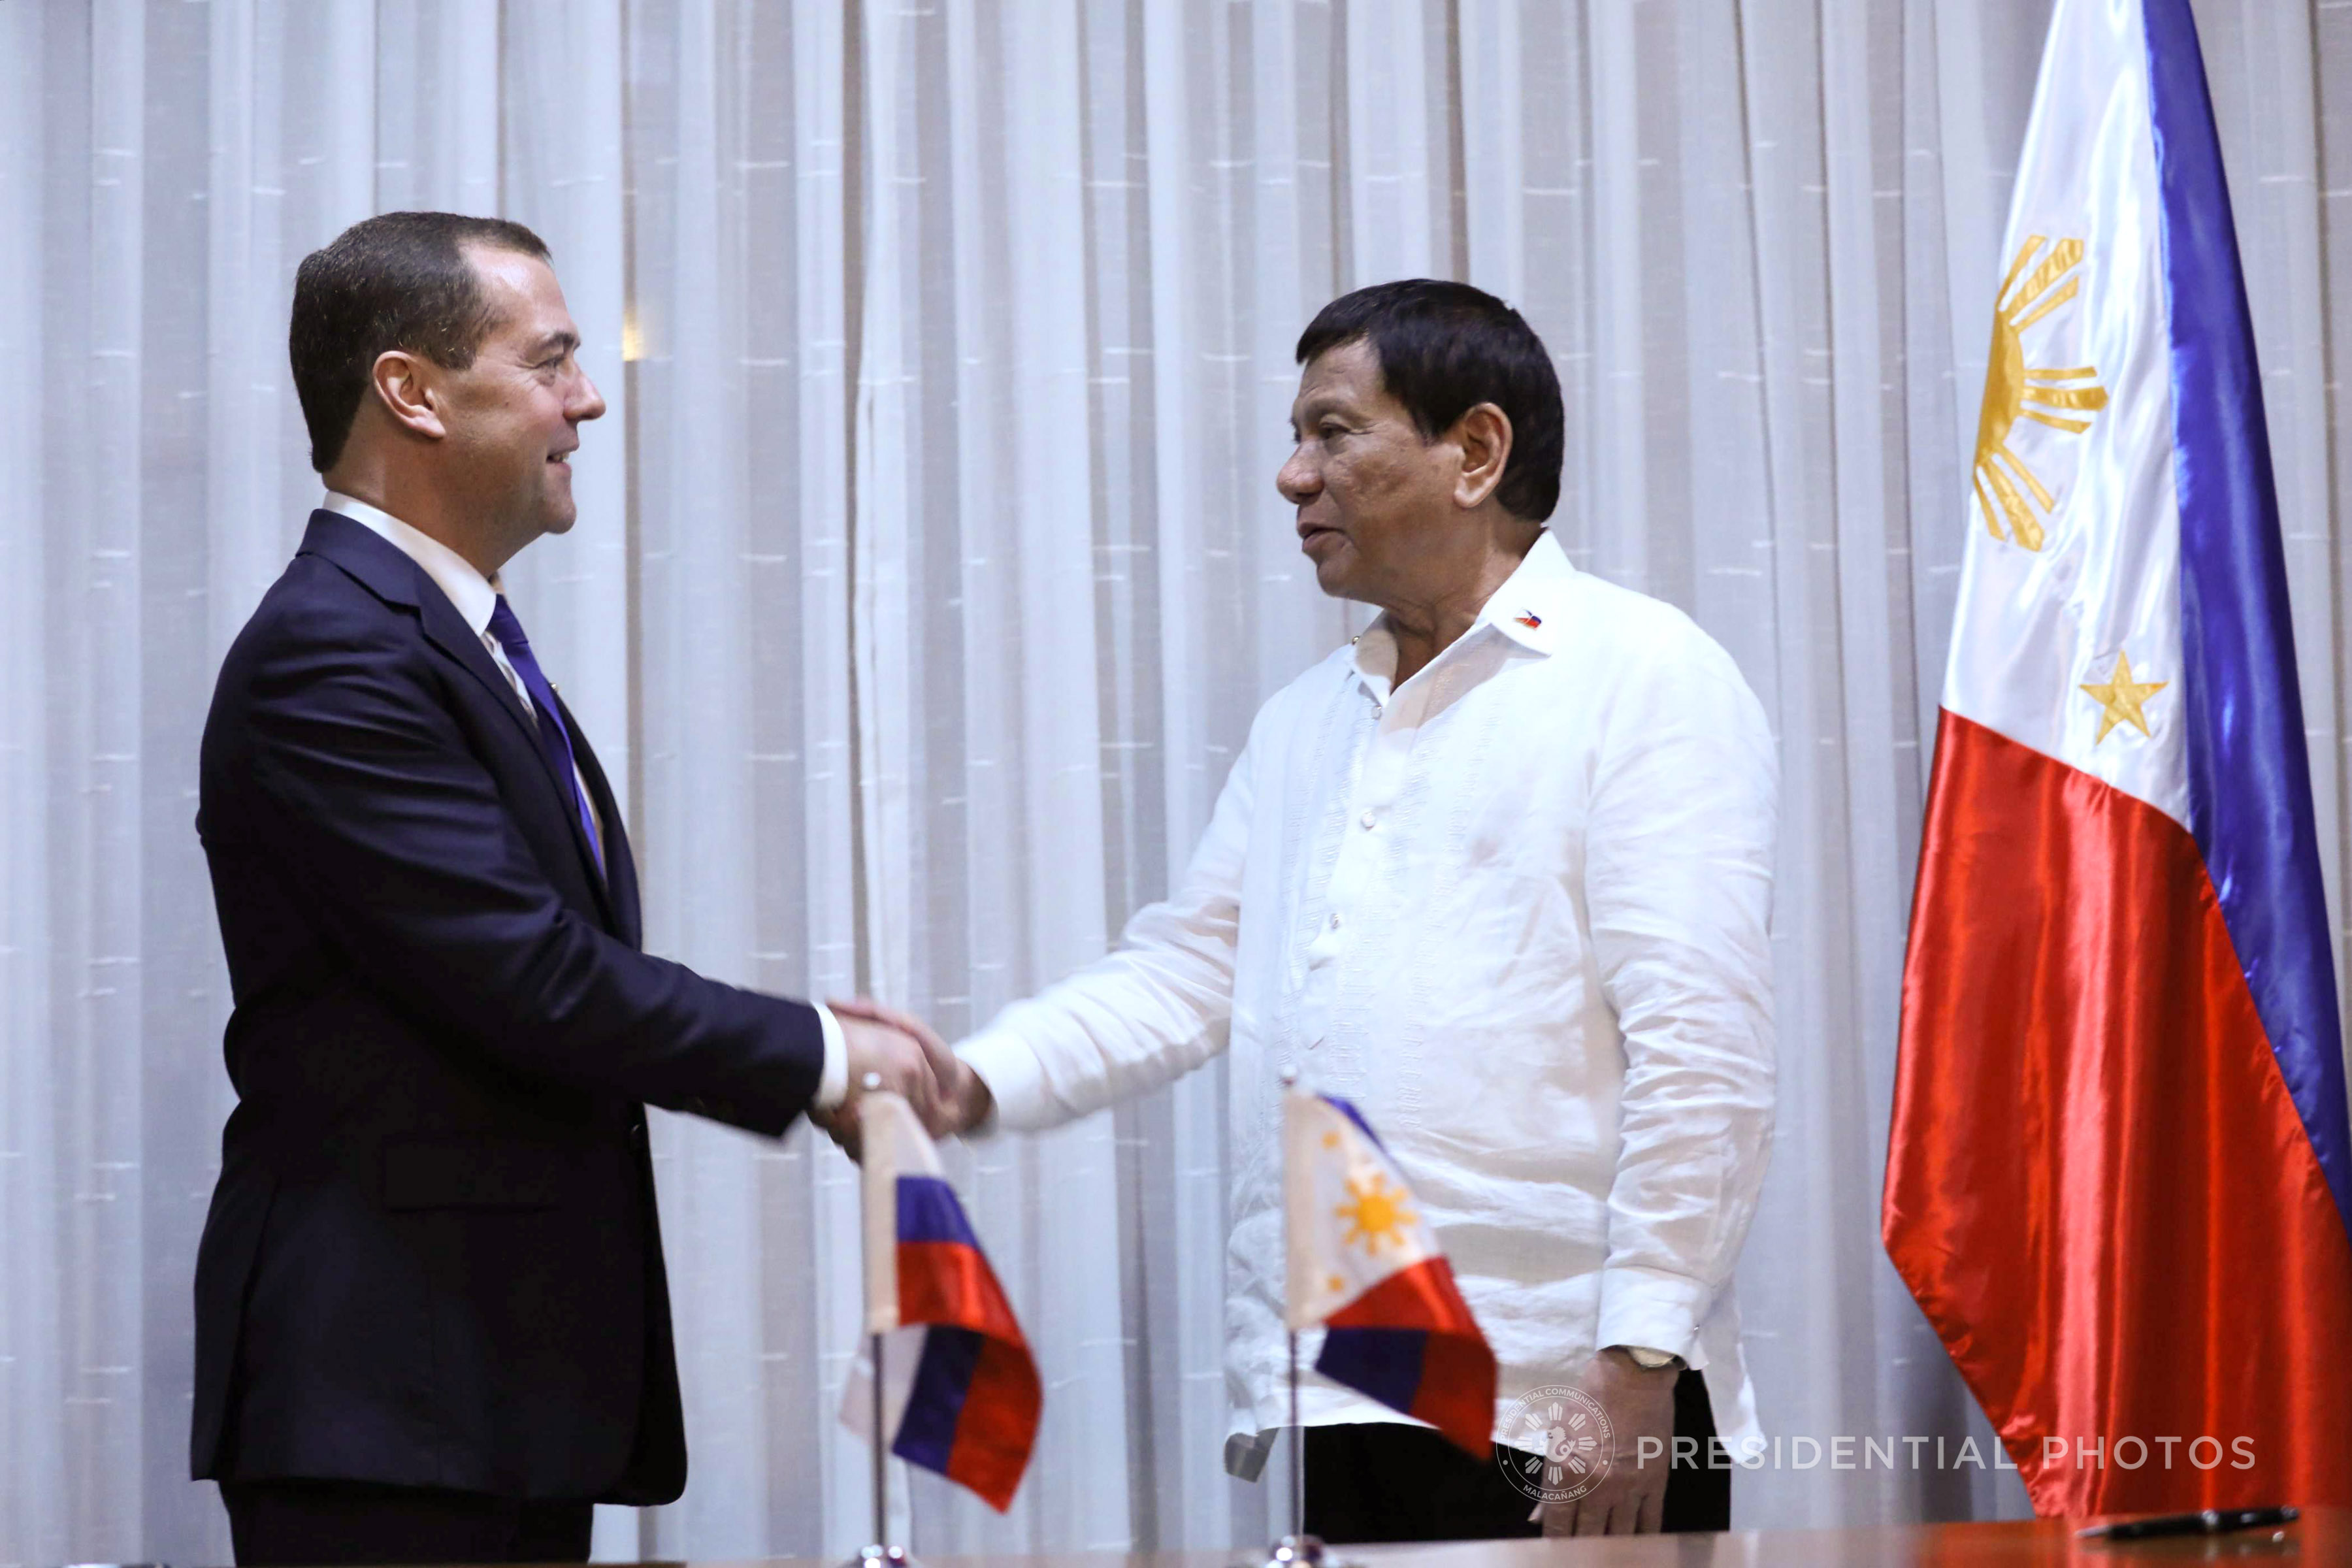 Russian Federation ready to 'expand ties' with PH, Medvedev tells Duterte